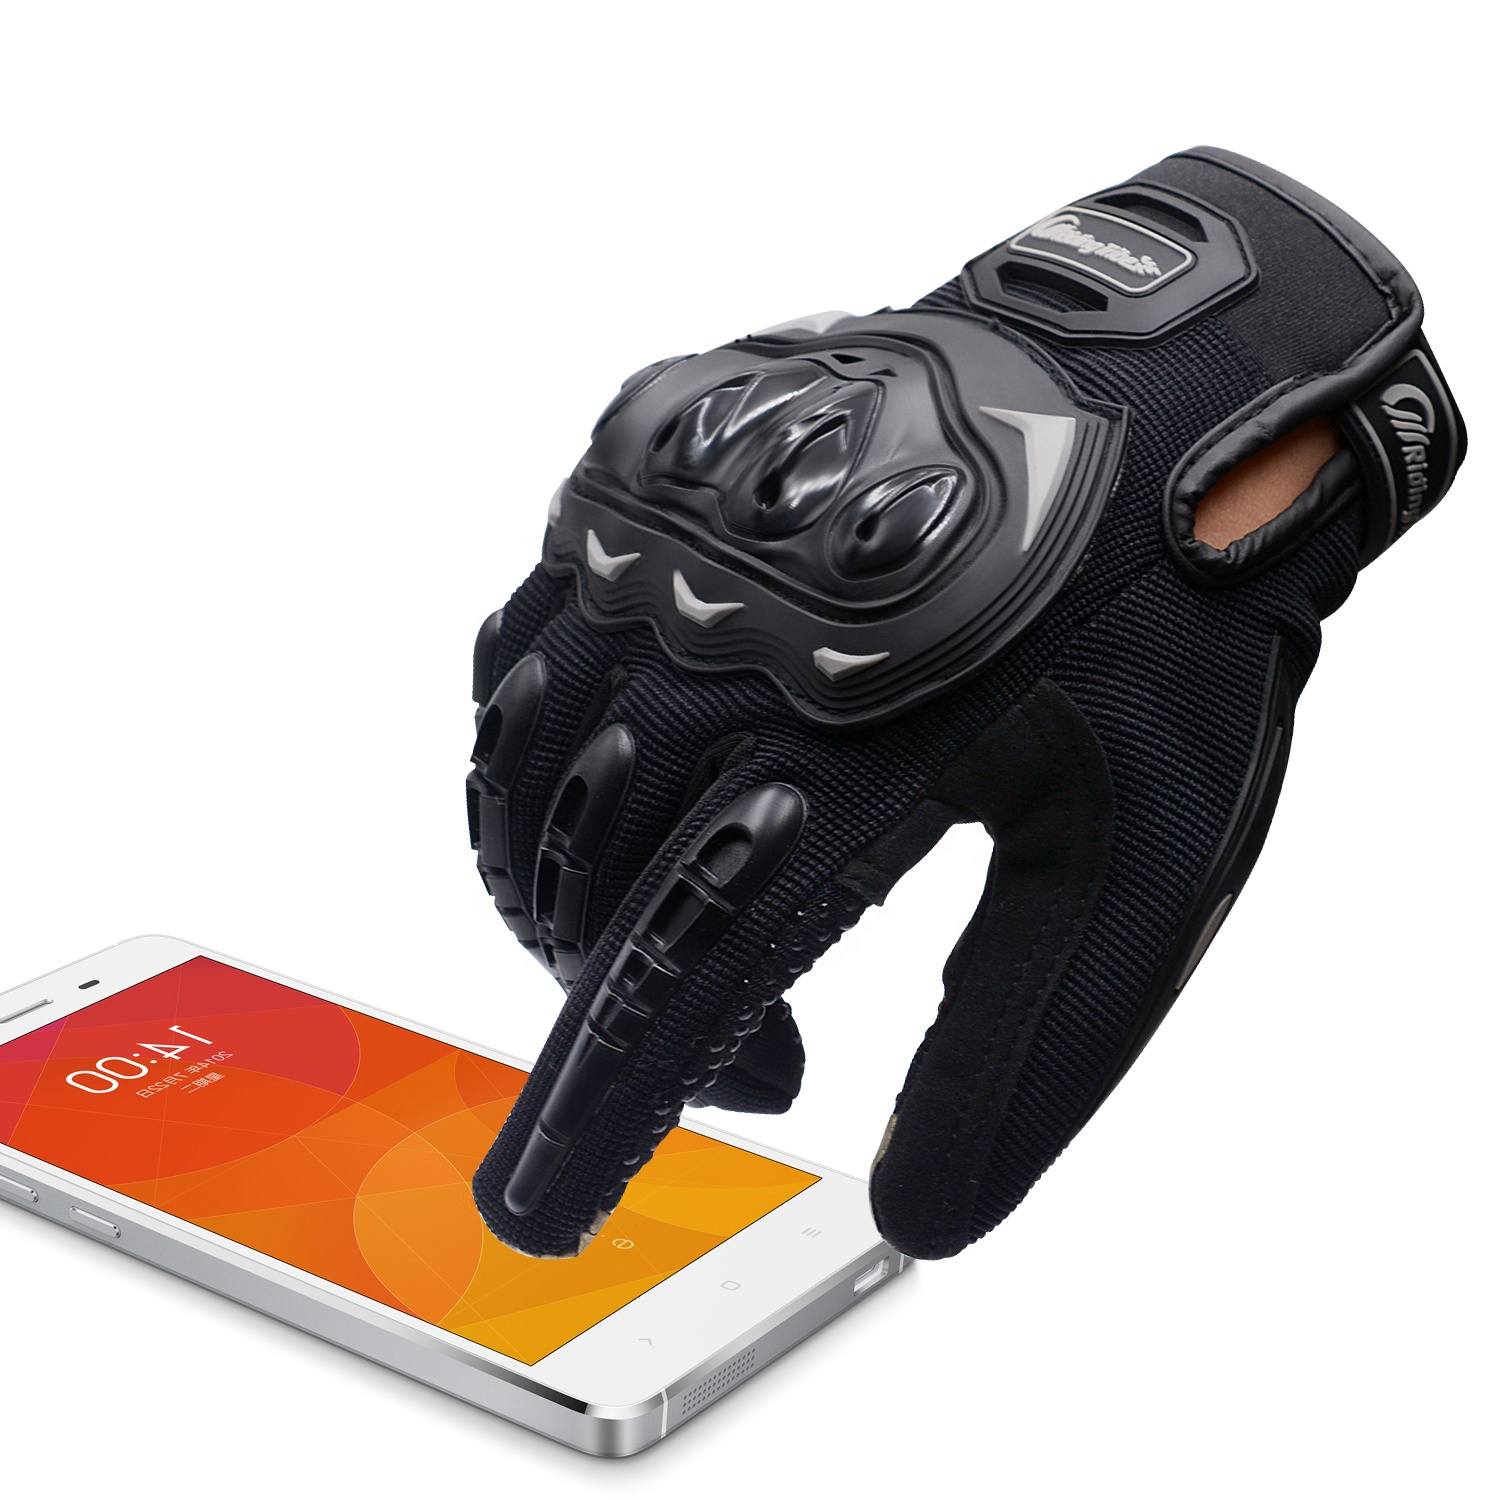 Universal MCS-17 <strong>Motorcycle</strong> <strong>Riding</strong> Gloves Full Finger Protective Gloves Sports <strong>Motorcycle</strong> Gloves guantes para moto